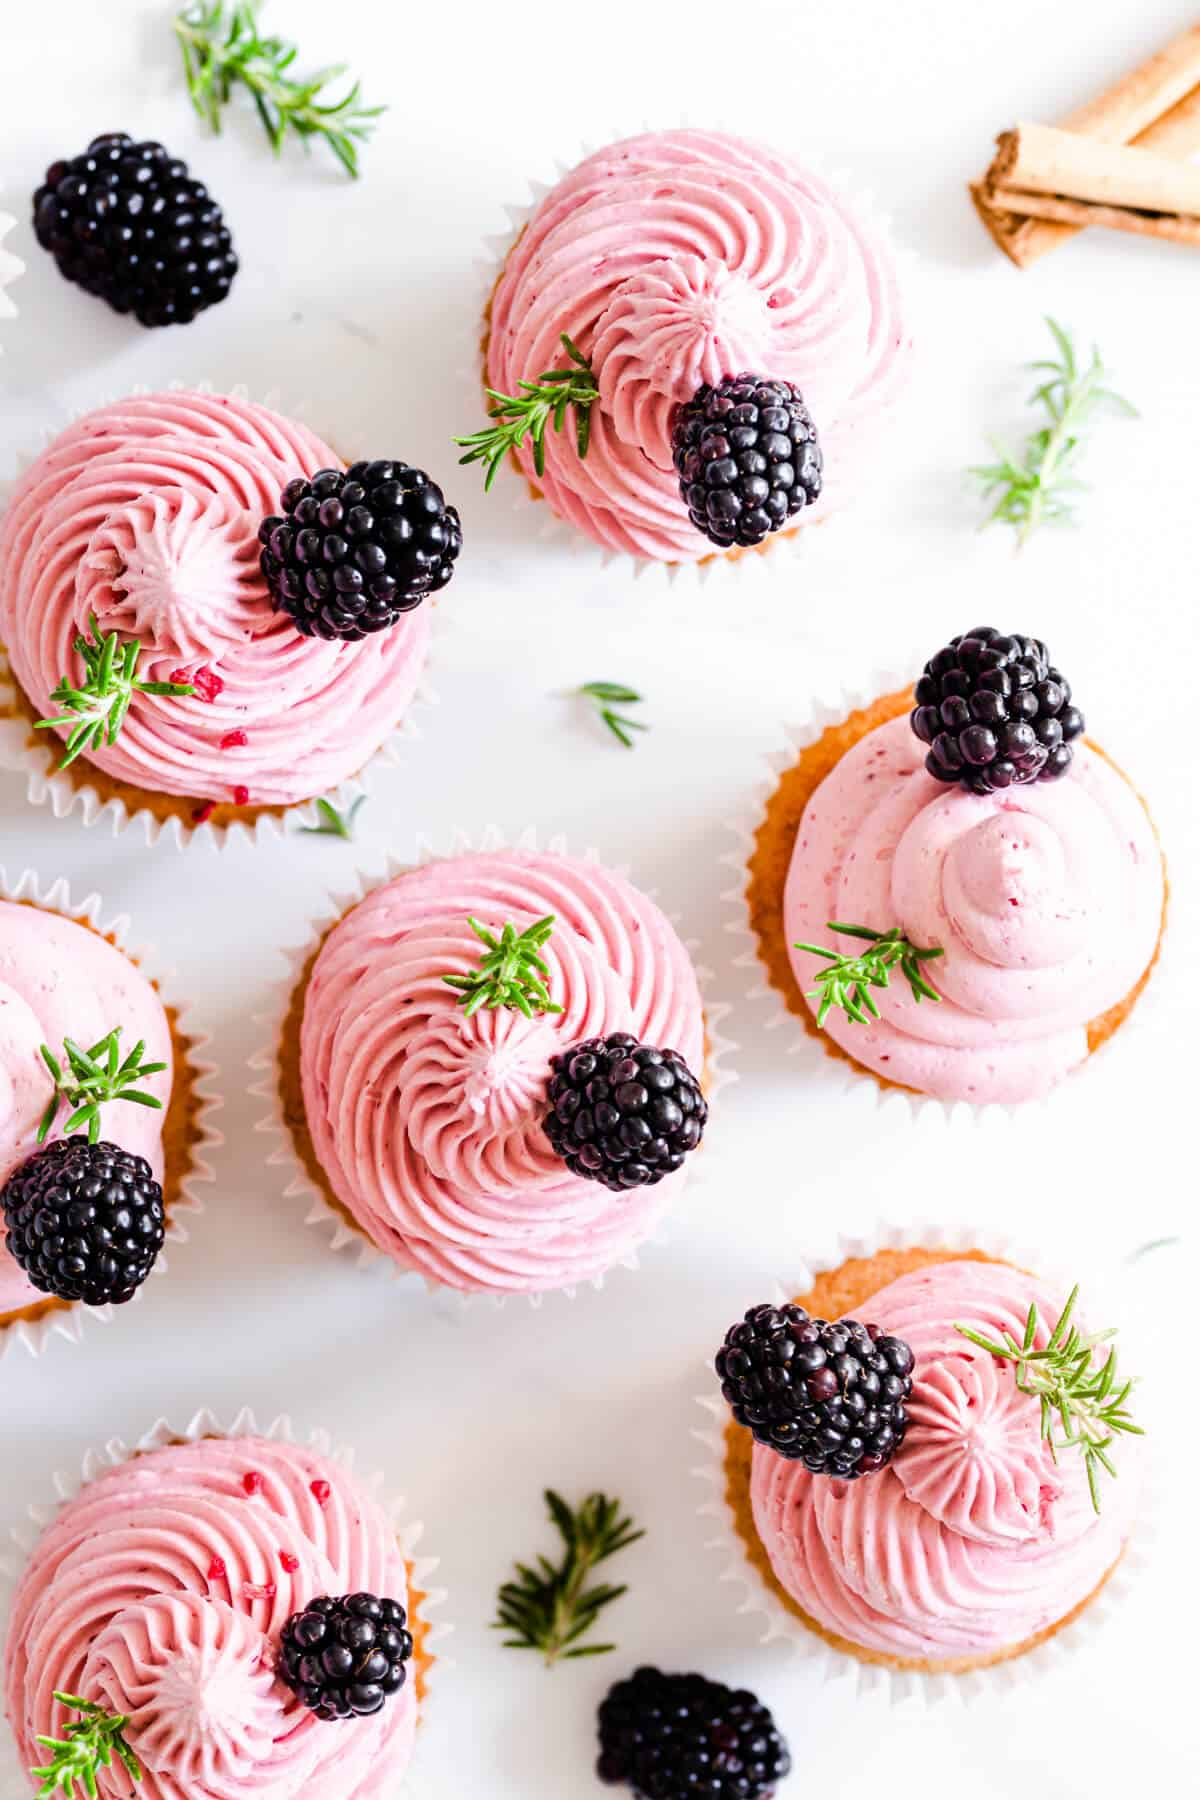 top view of spiced apple cupcakes with blackberry buttercream